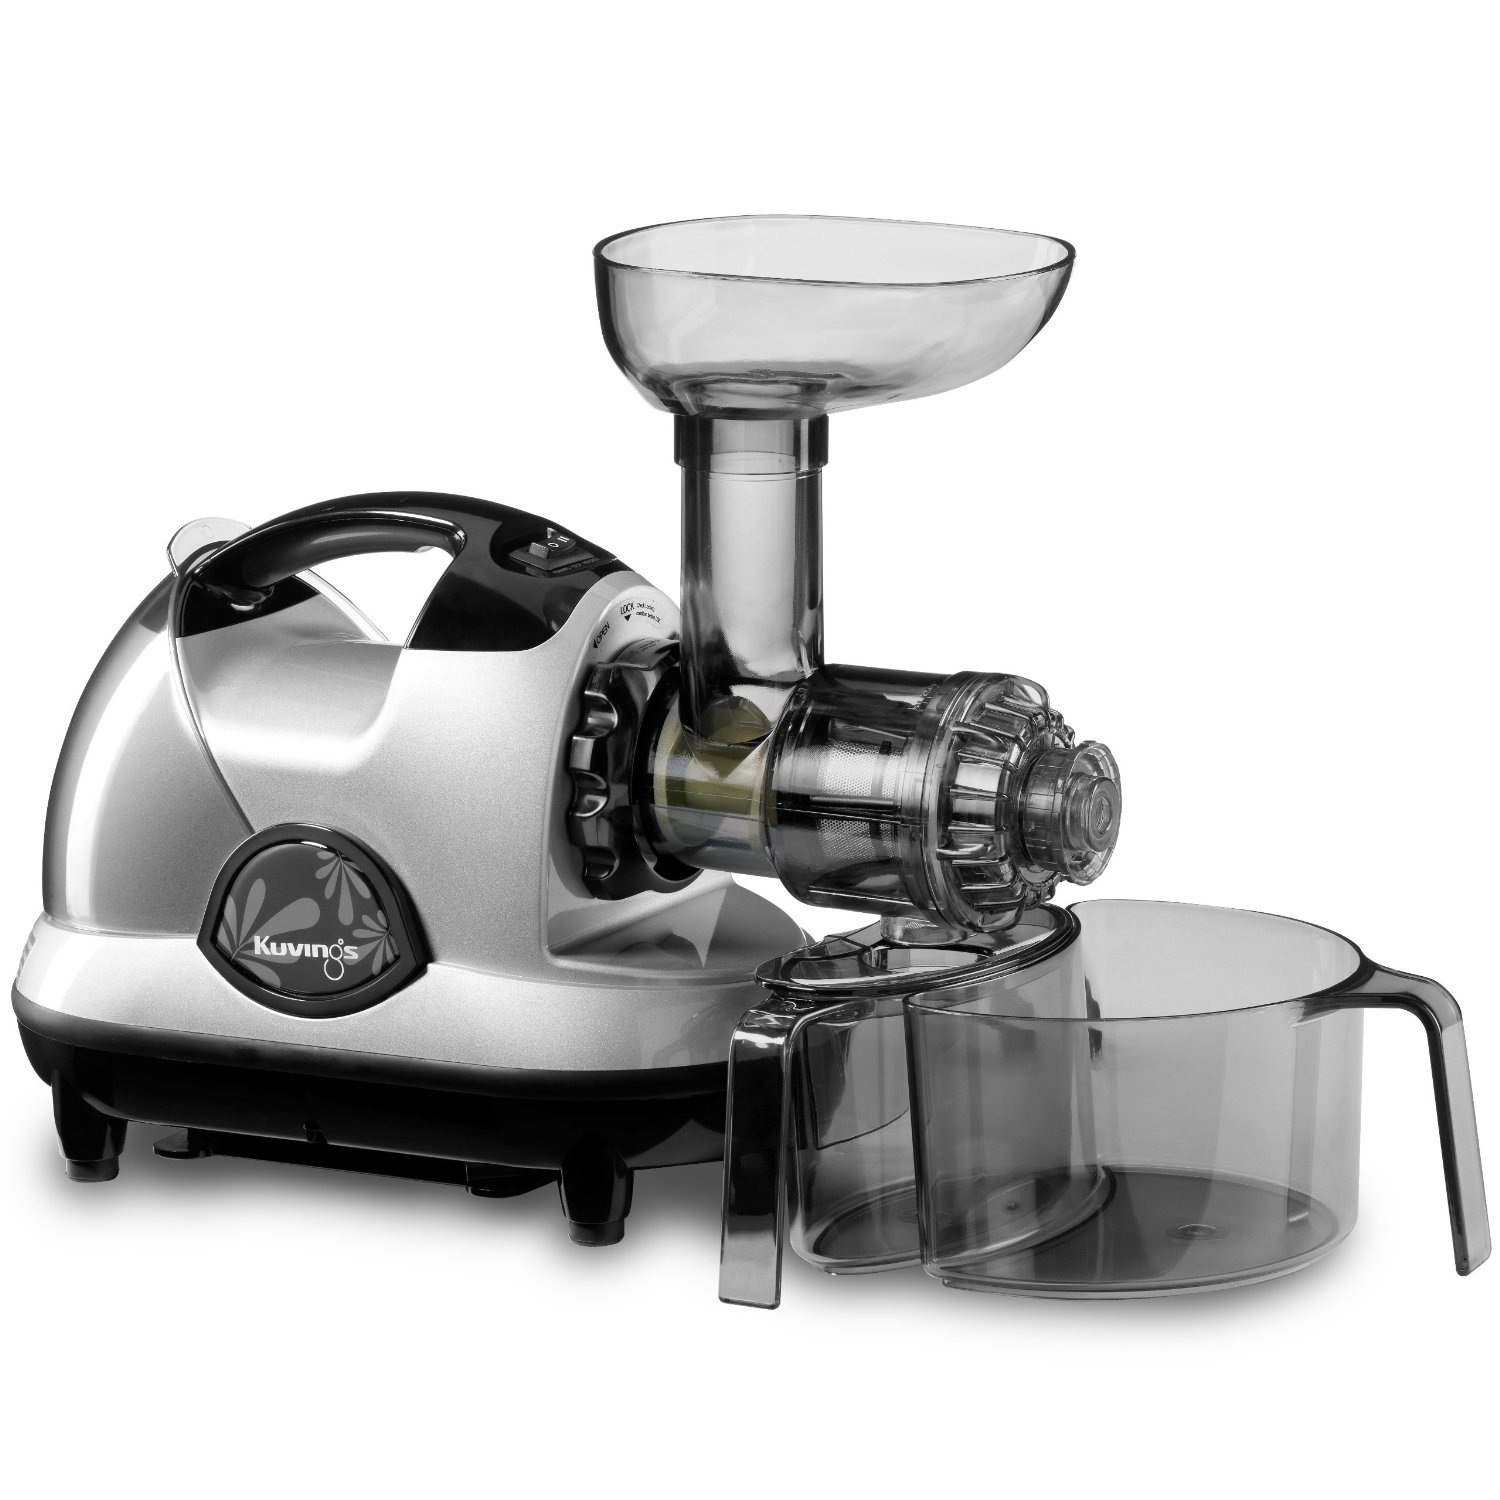 Champion Slow Masticating Juicer : 5 Best Kuvings Juicer Reviews UPDATED: 2018 The Home ...